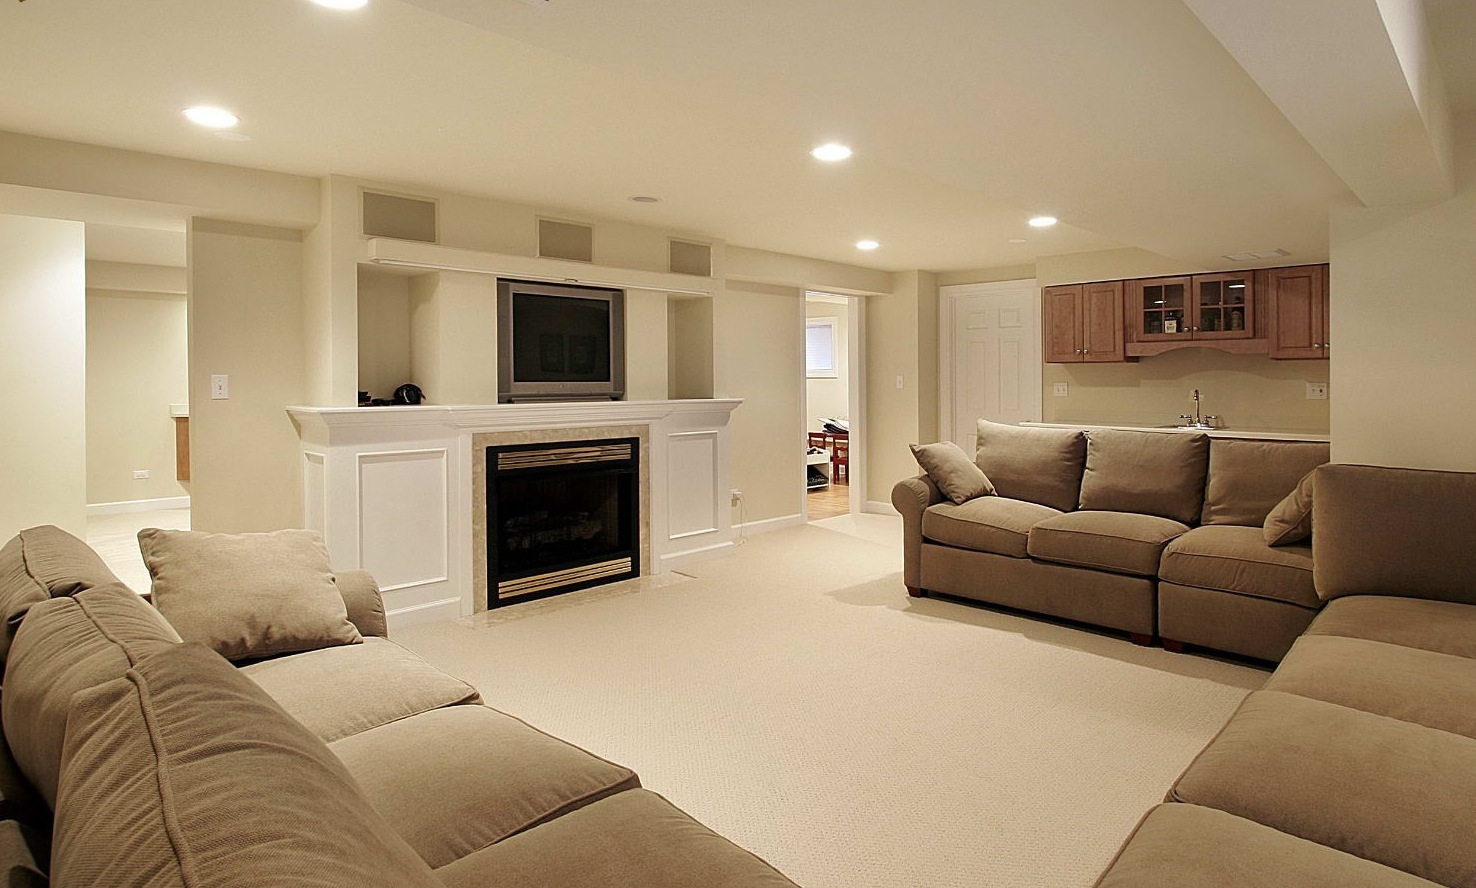 Basement Remodelling 30 Basement Remodeling Ideas & Inspiration